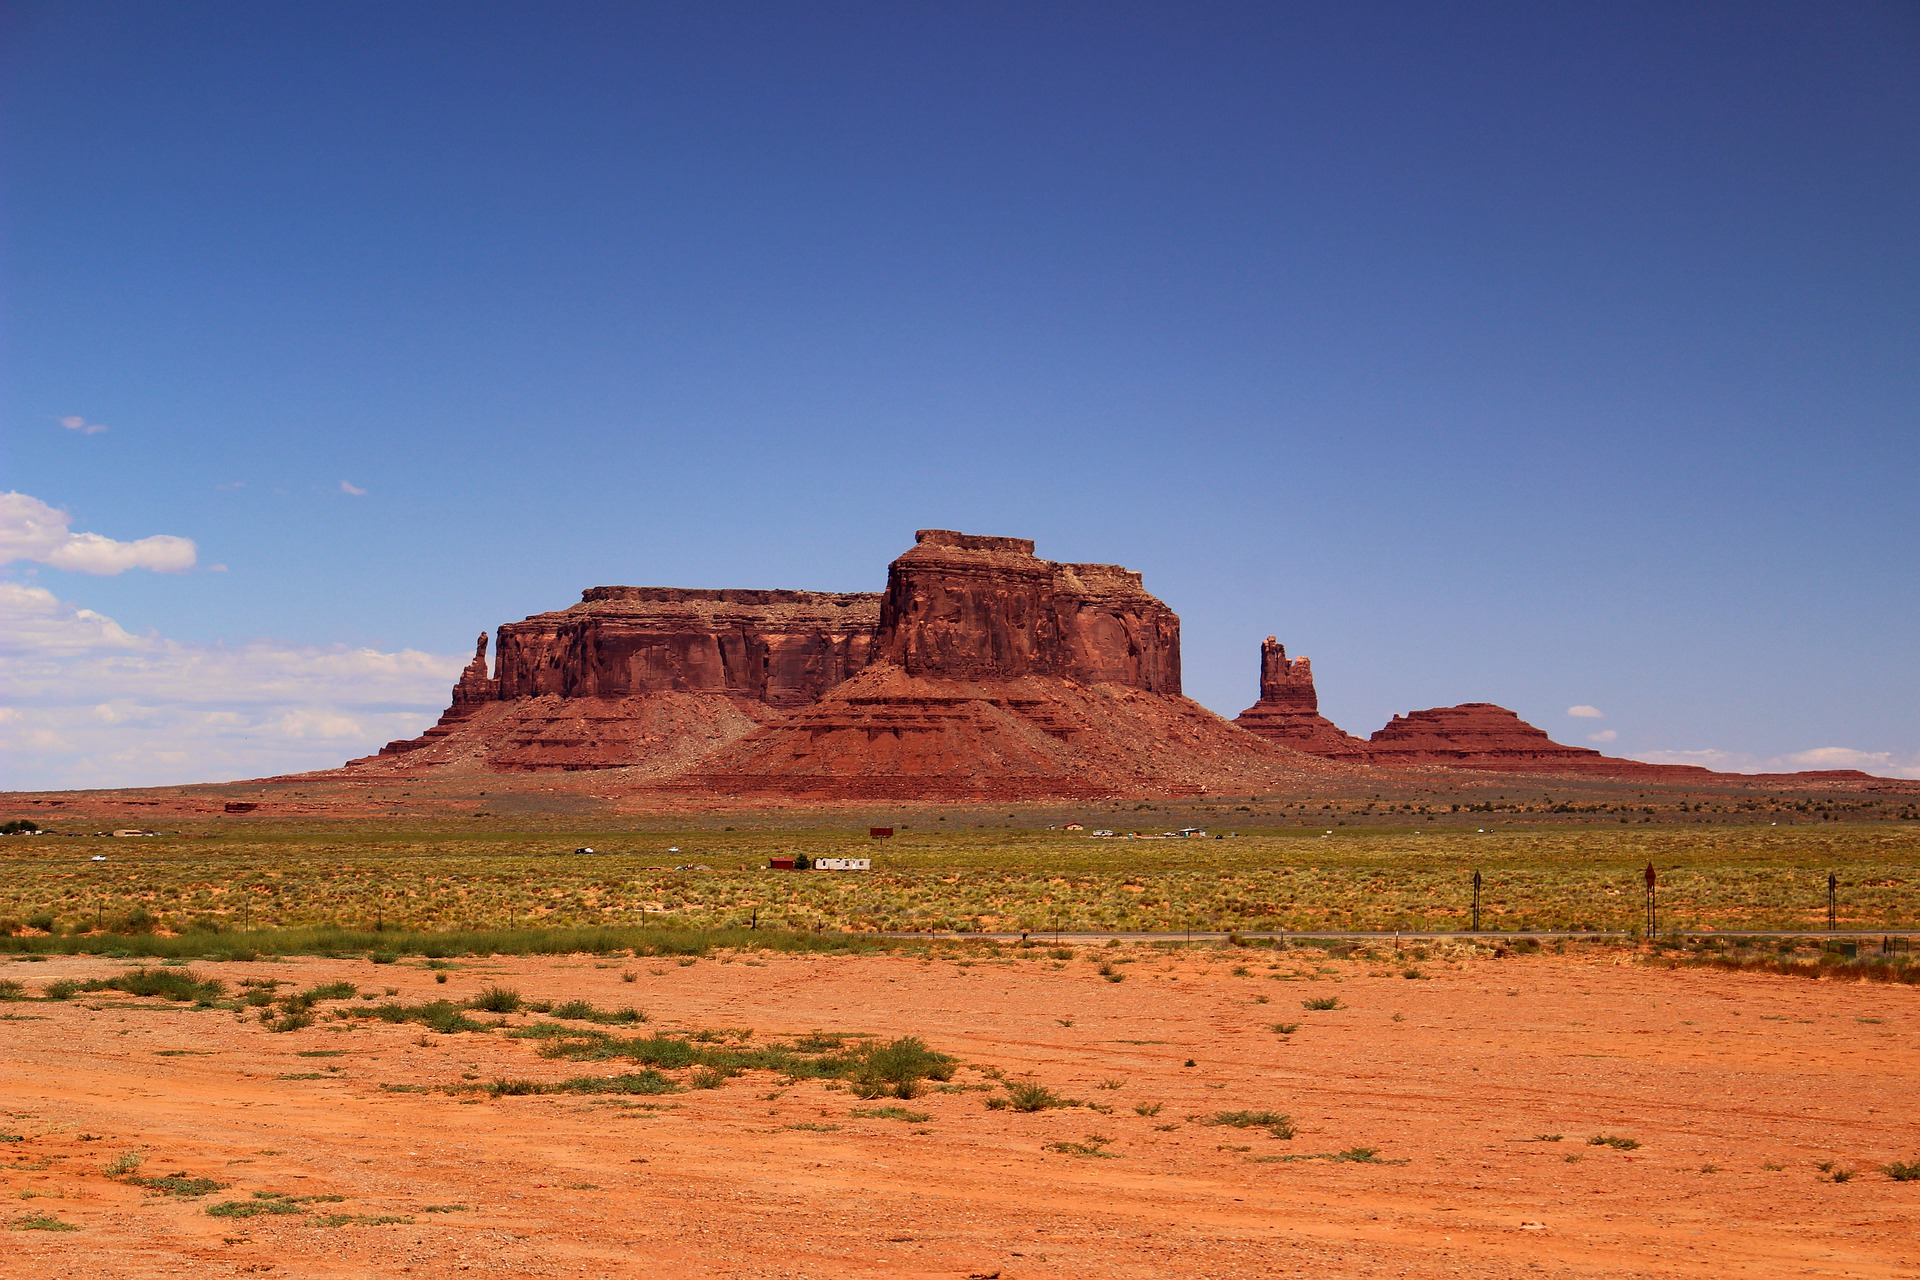 monument-valley-5012876_1920